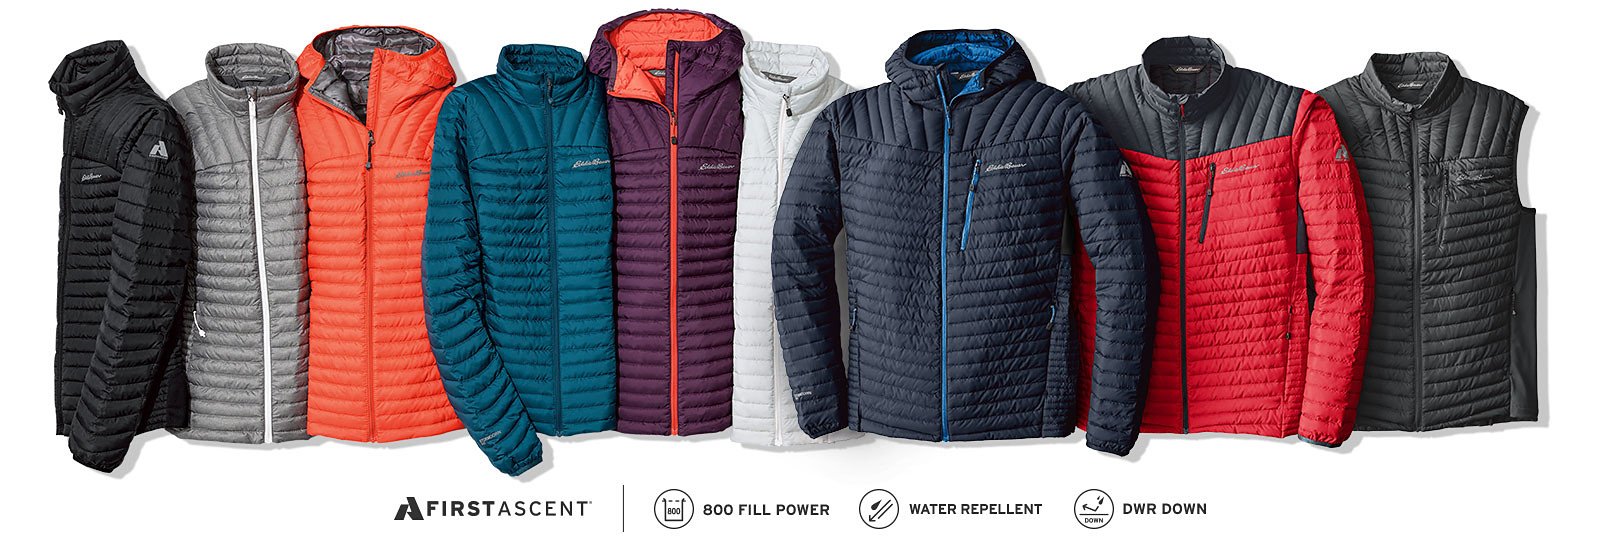 Different colors and styles of MicroTherm StormDown Outerwear